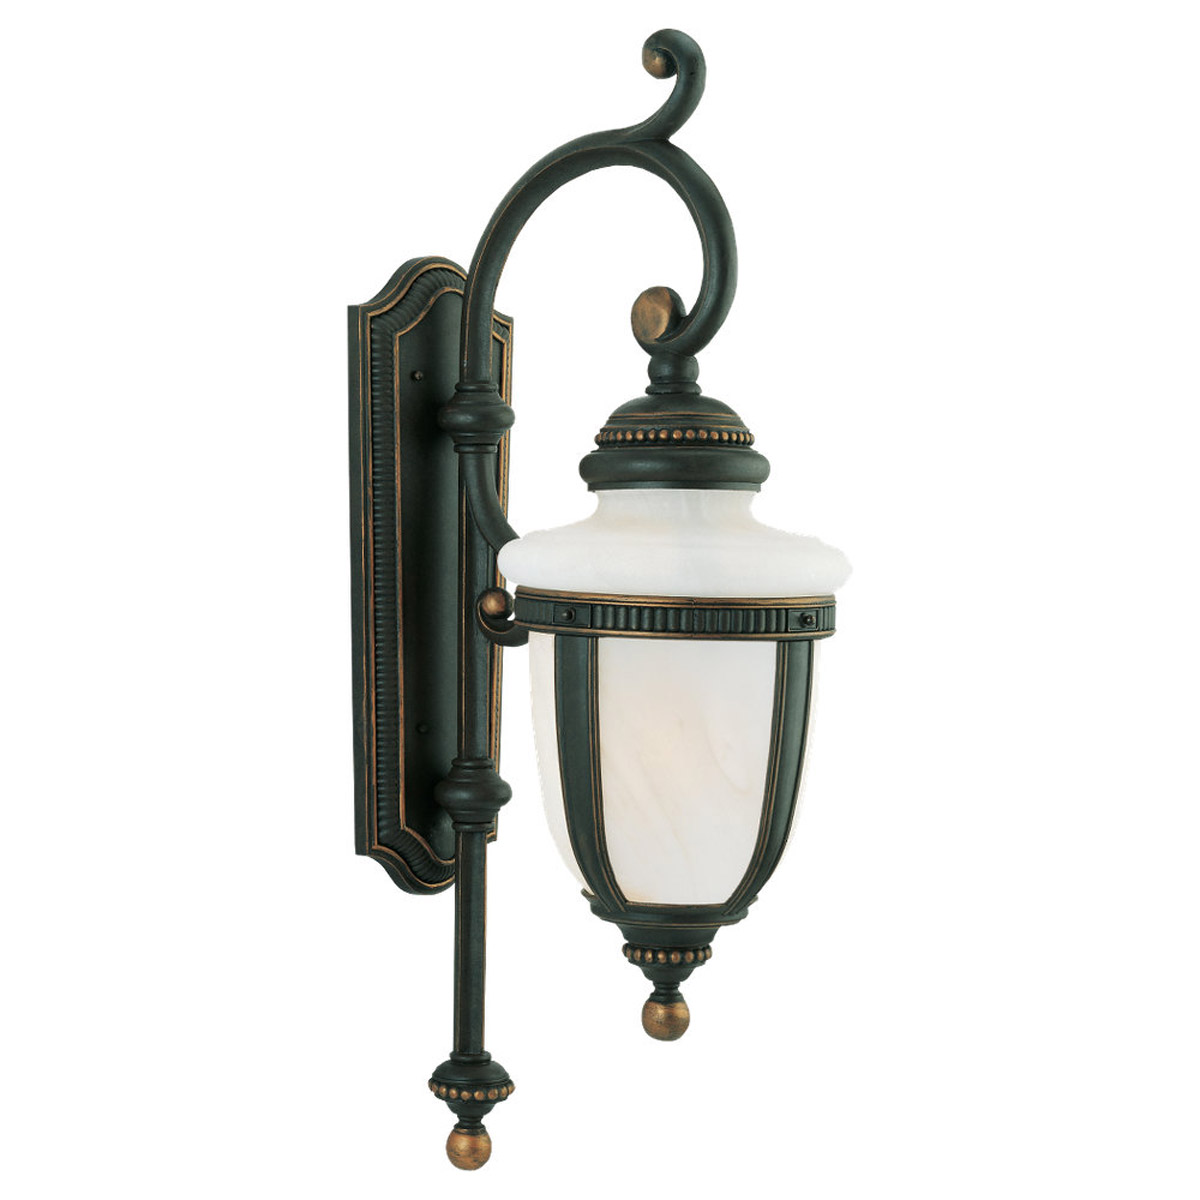 Sea Gull Lighting Portofino 2 Light Outdoor Wall Lantern in Mojave Luster 88057-764 photo